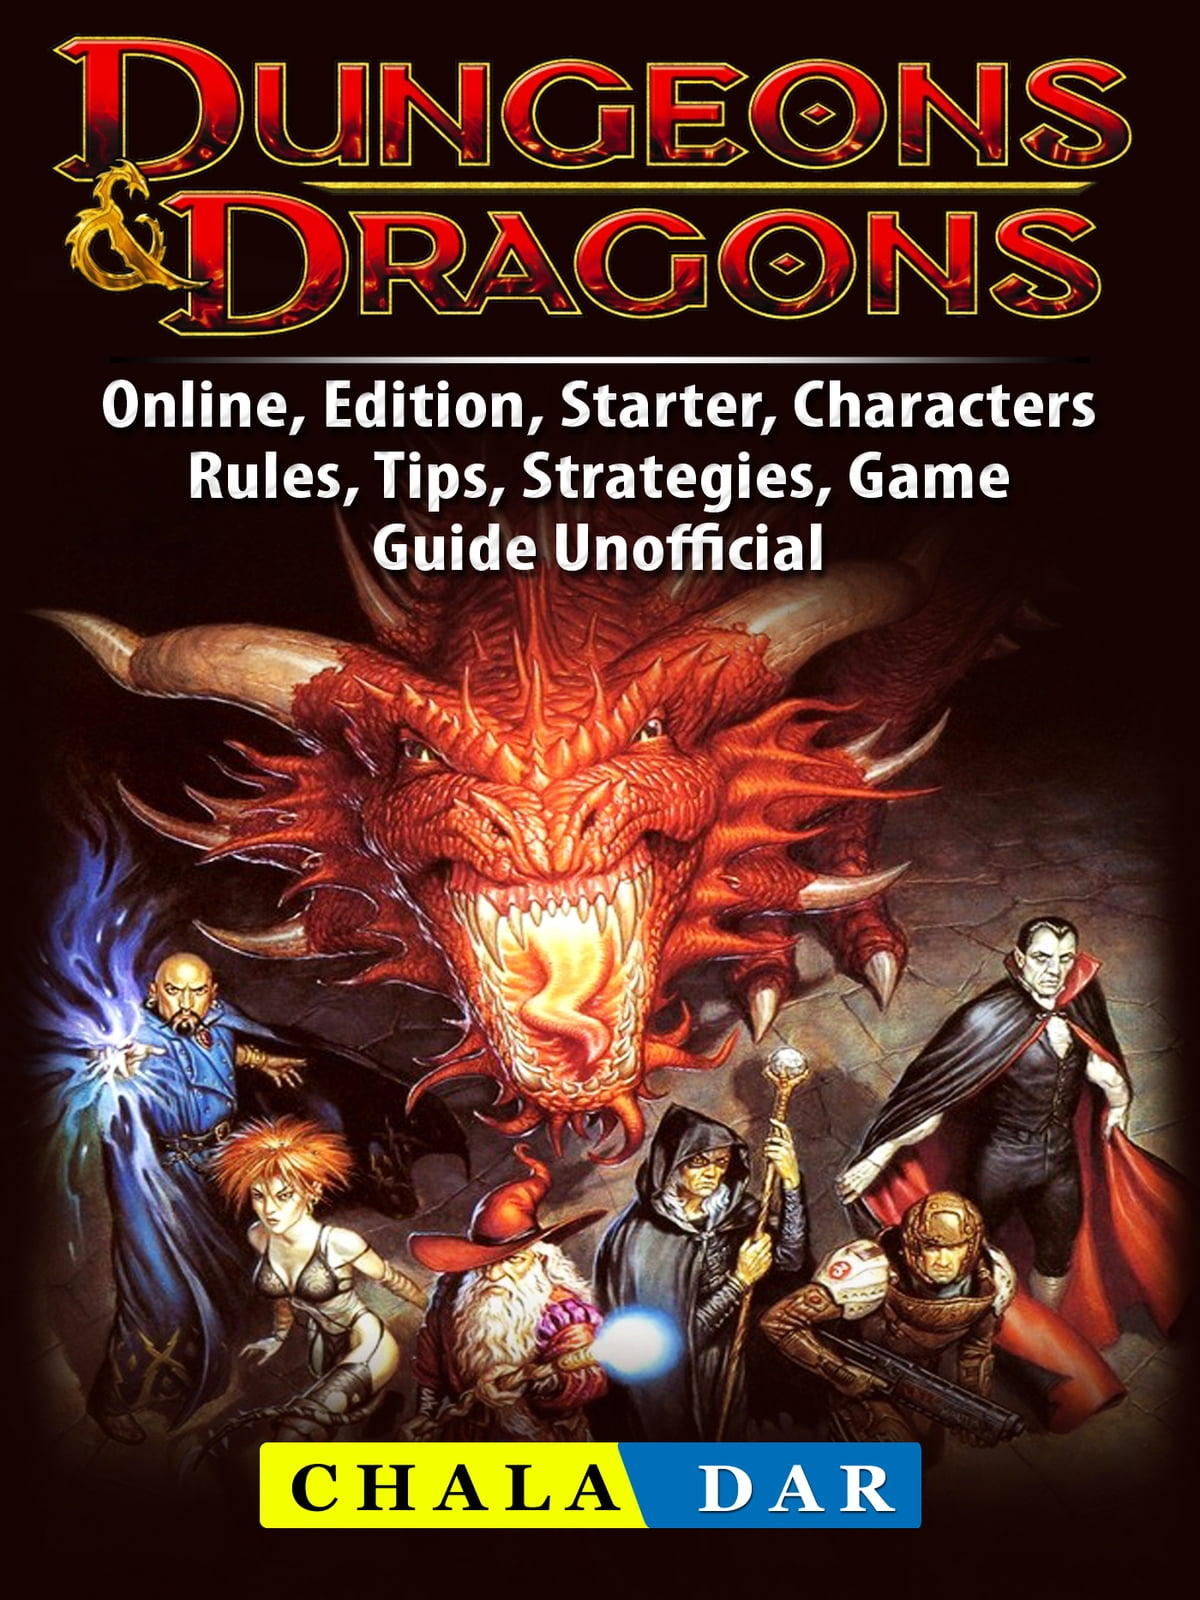 Dungeons & Dragons, Online, Edition, Starter, Characters, Rules, Tips,  Strategies, Game Guide Unofficial ebook by Chala Dar - Rakuten Kobo